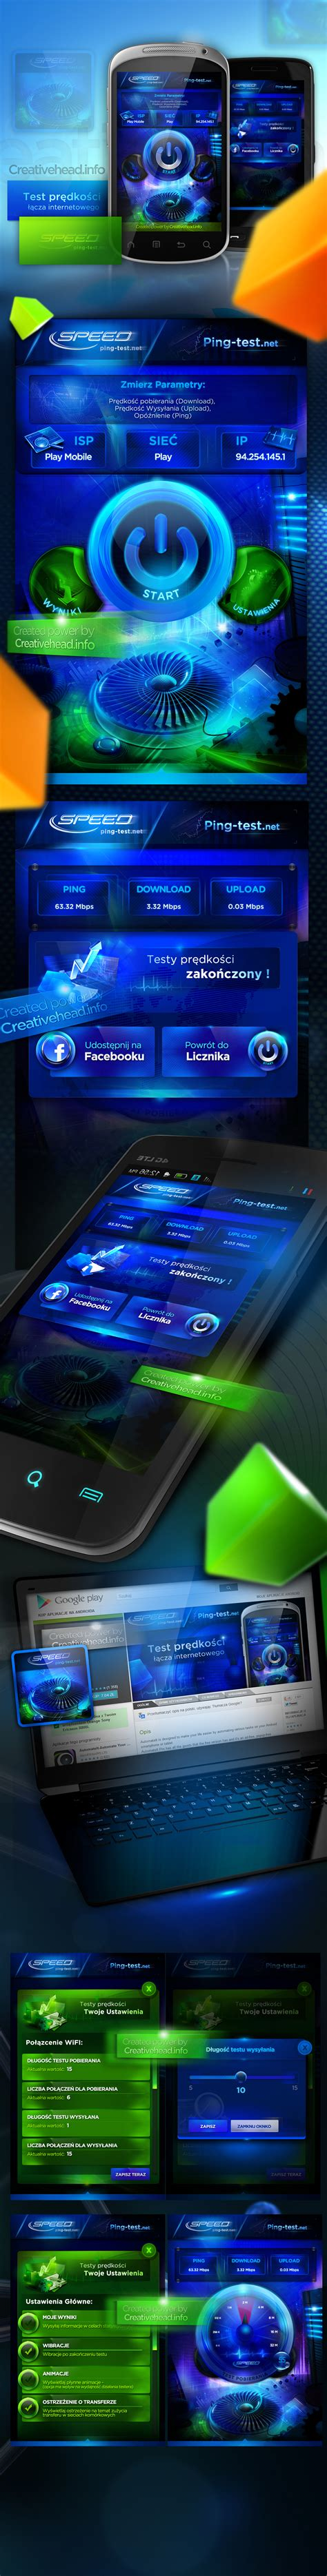 speed android speed test android app by webdesigner1921 on deviantart